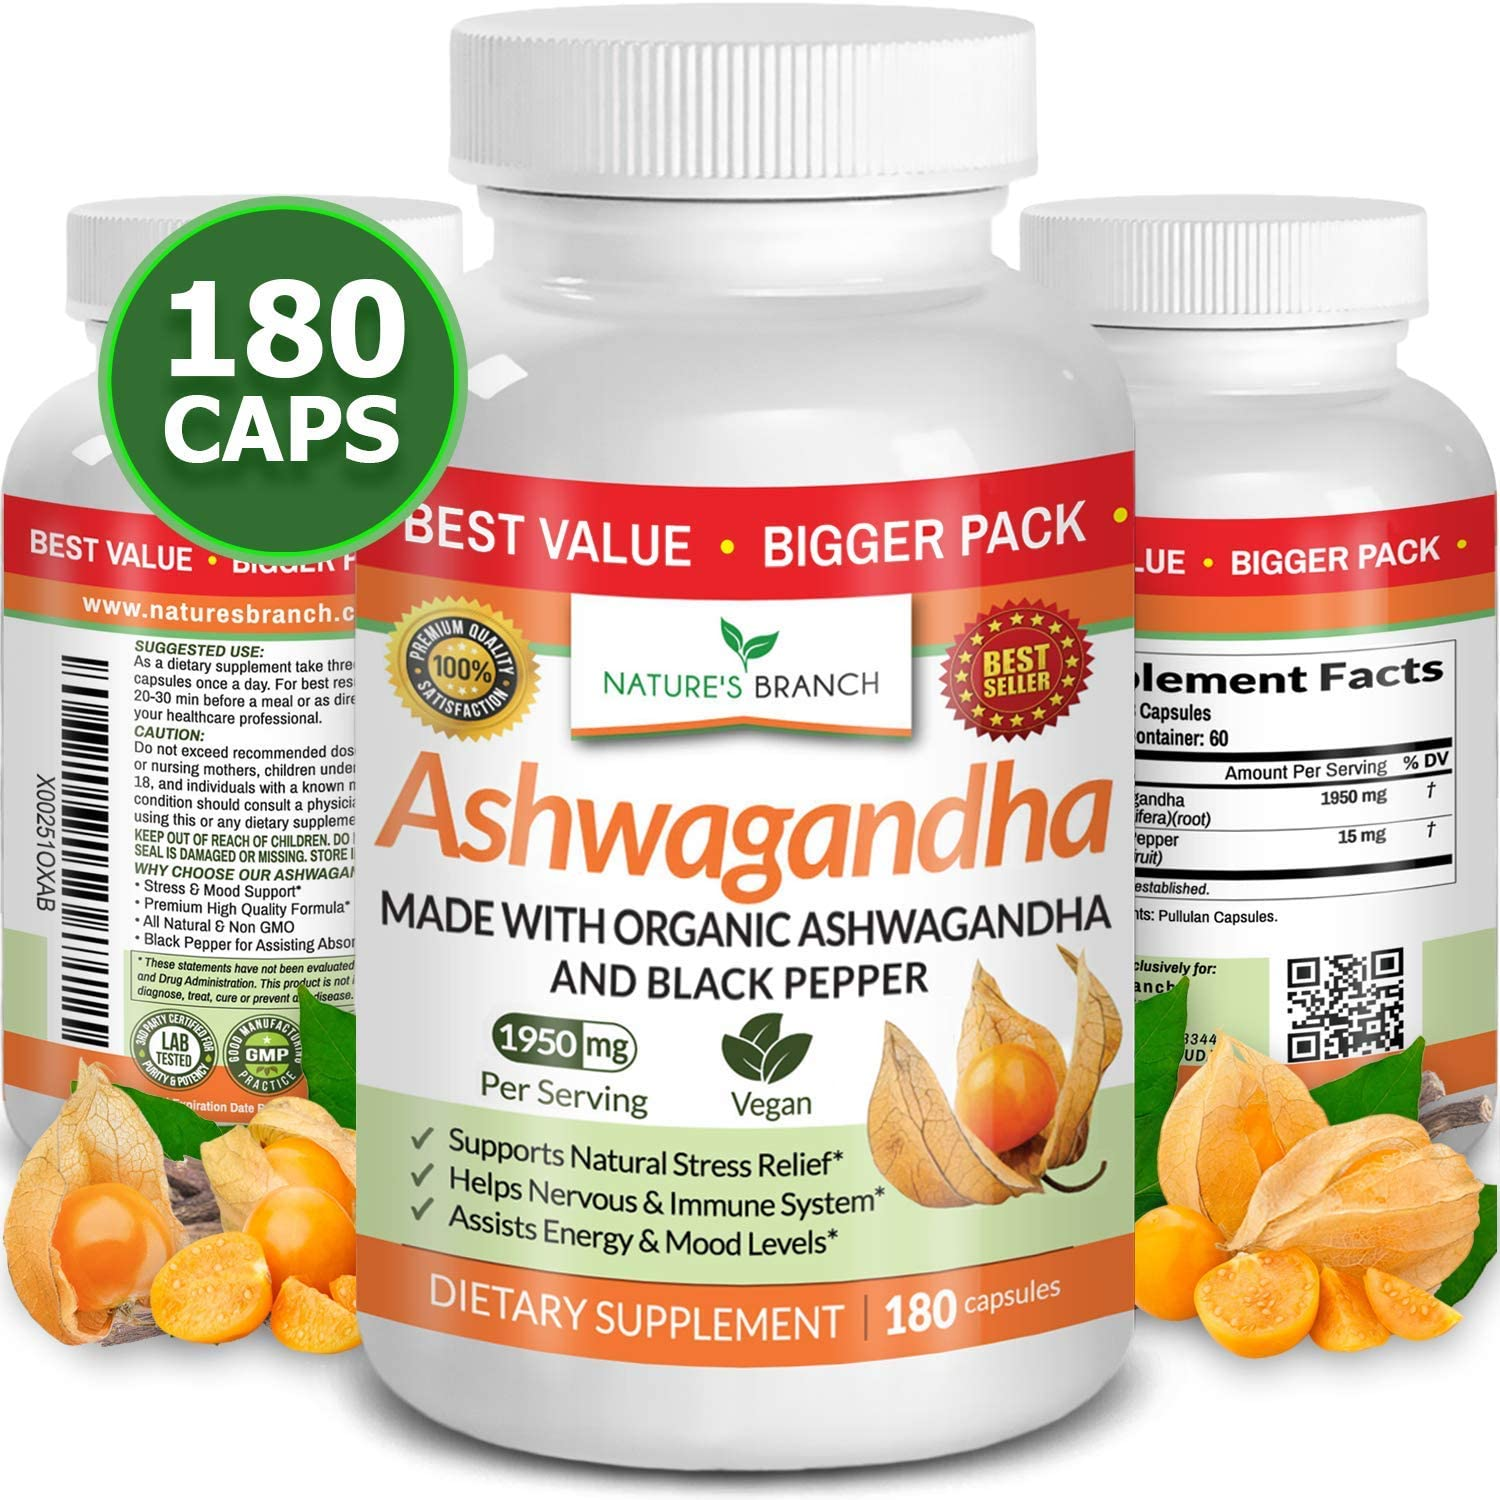 Organic Ashwagandha with Black Pepper - 180 Capsules - 1950mg Maximum Support for Stress Relief, Anti Anxiety, Sleep, Thyroid, Energy, Hair Pure Root Extract Powder Vegan Supplements for Men and Women